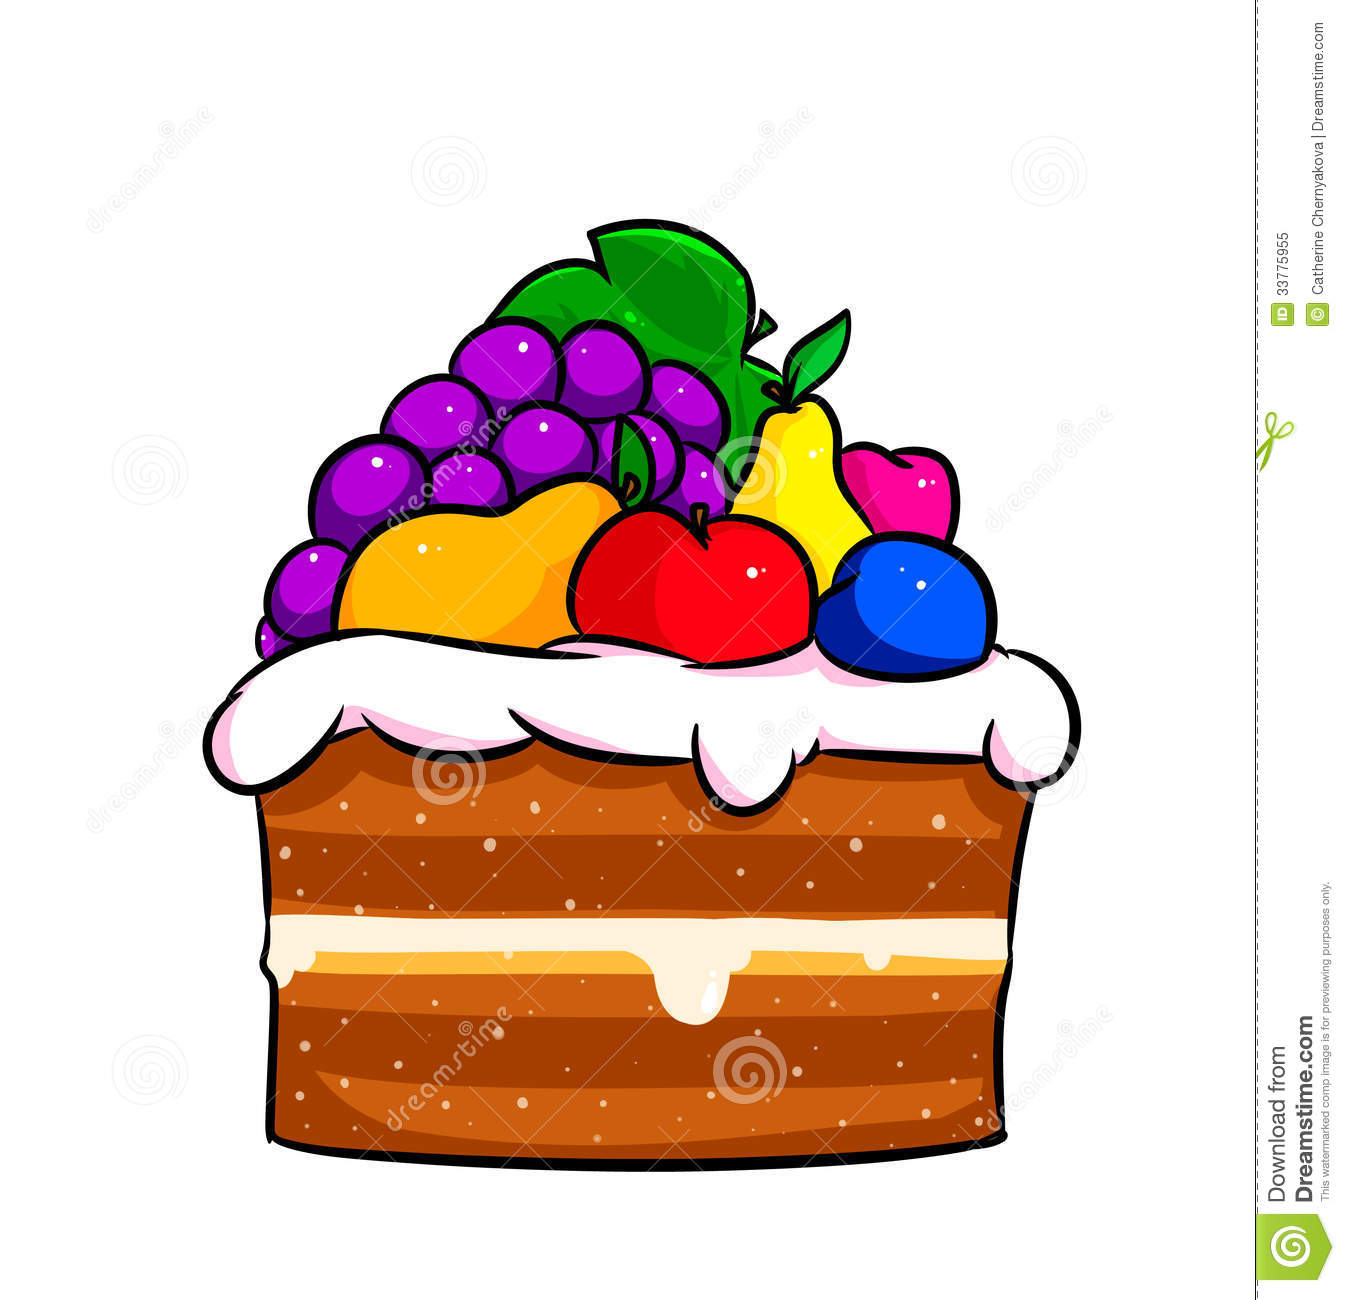 Cake Fruit Cartoon Stock Illustration Illustration Of